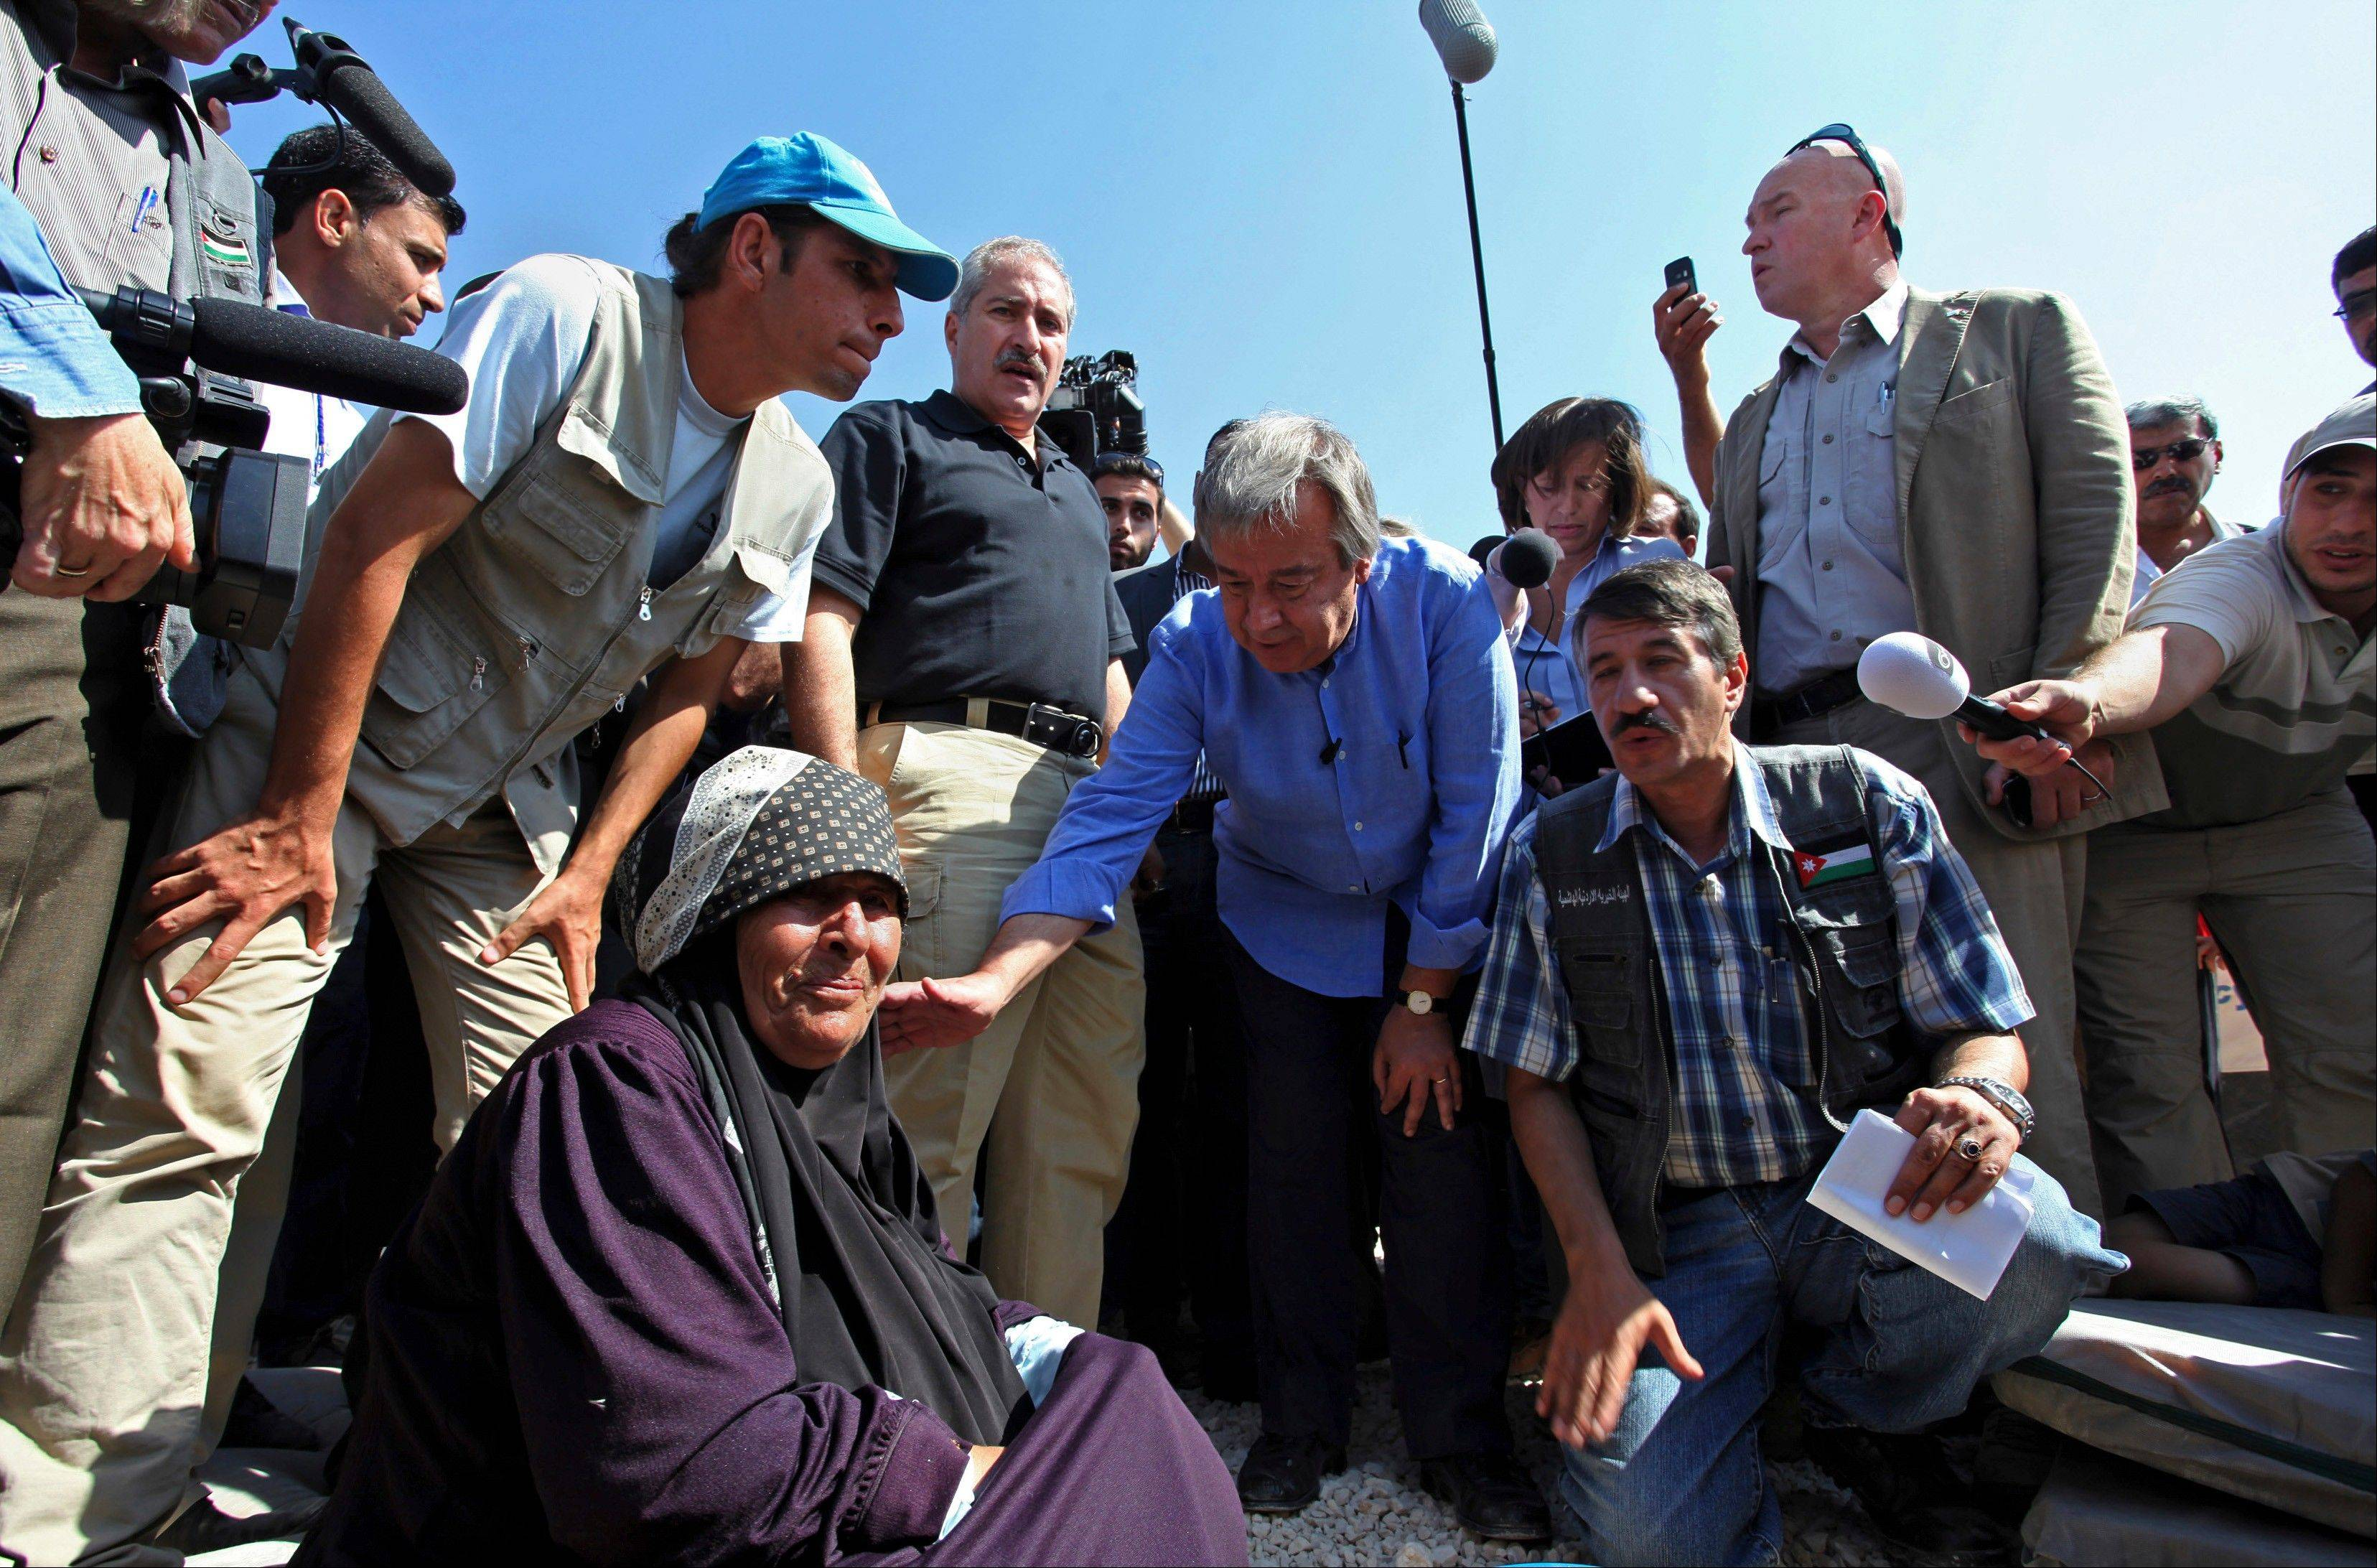 U.N. refugee chief Antonio Guterres, center, taps on the shoulder of an elderly Syrian refugee at the Zaatari Refugee Camp in Jordan for Syrians who fled the civil war in their country, Tuesday, Sept. 11, 2012. The Zaatari camp hosts about 27,000 Syrians displaced by the 18-month conflict that has so far claimed at least 23,000 lives, according to activists.